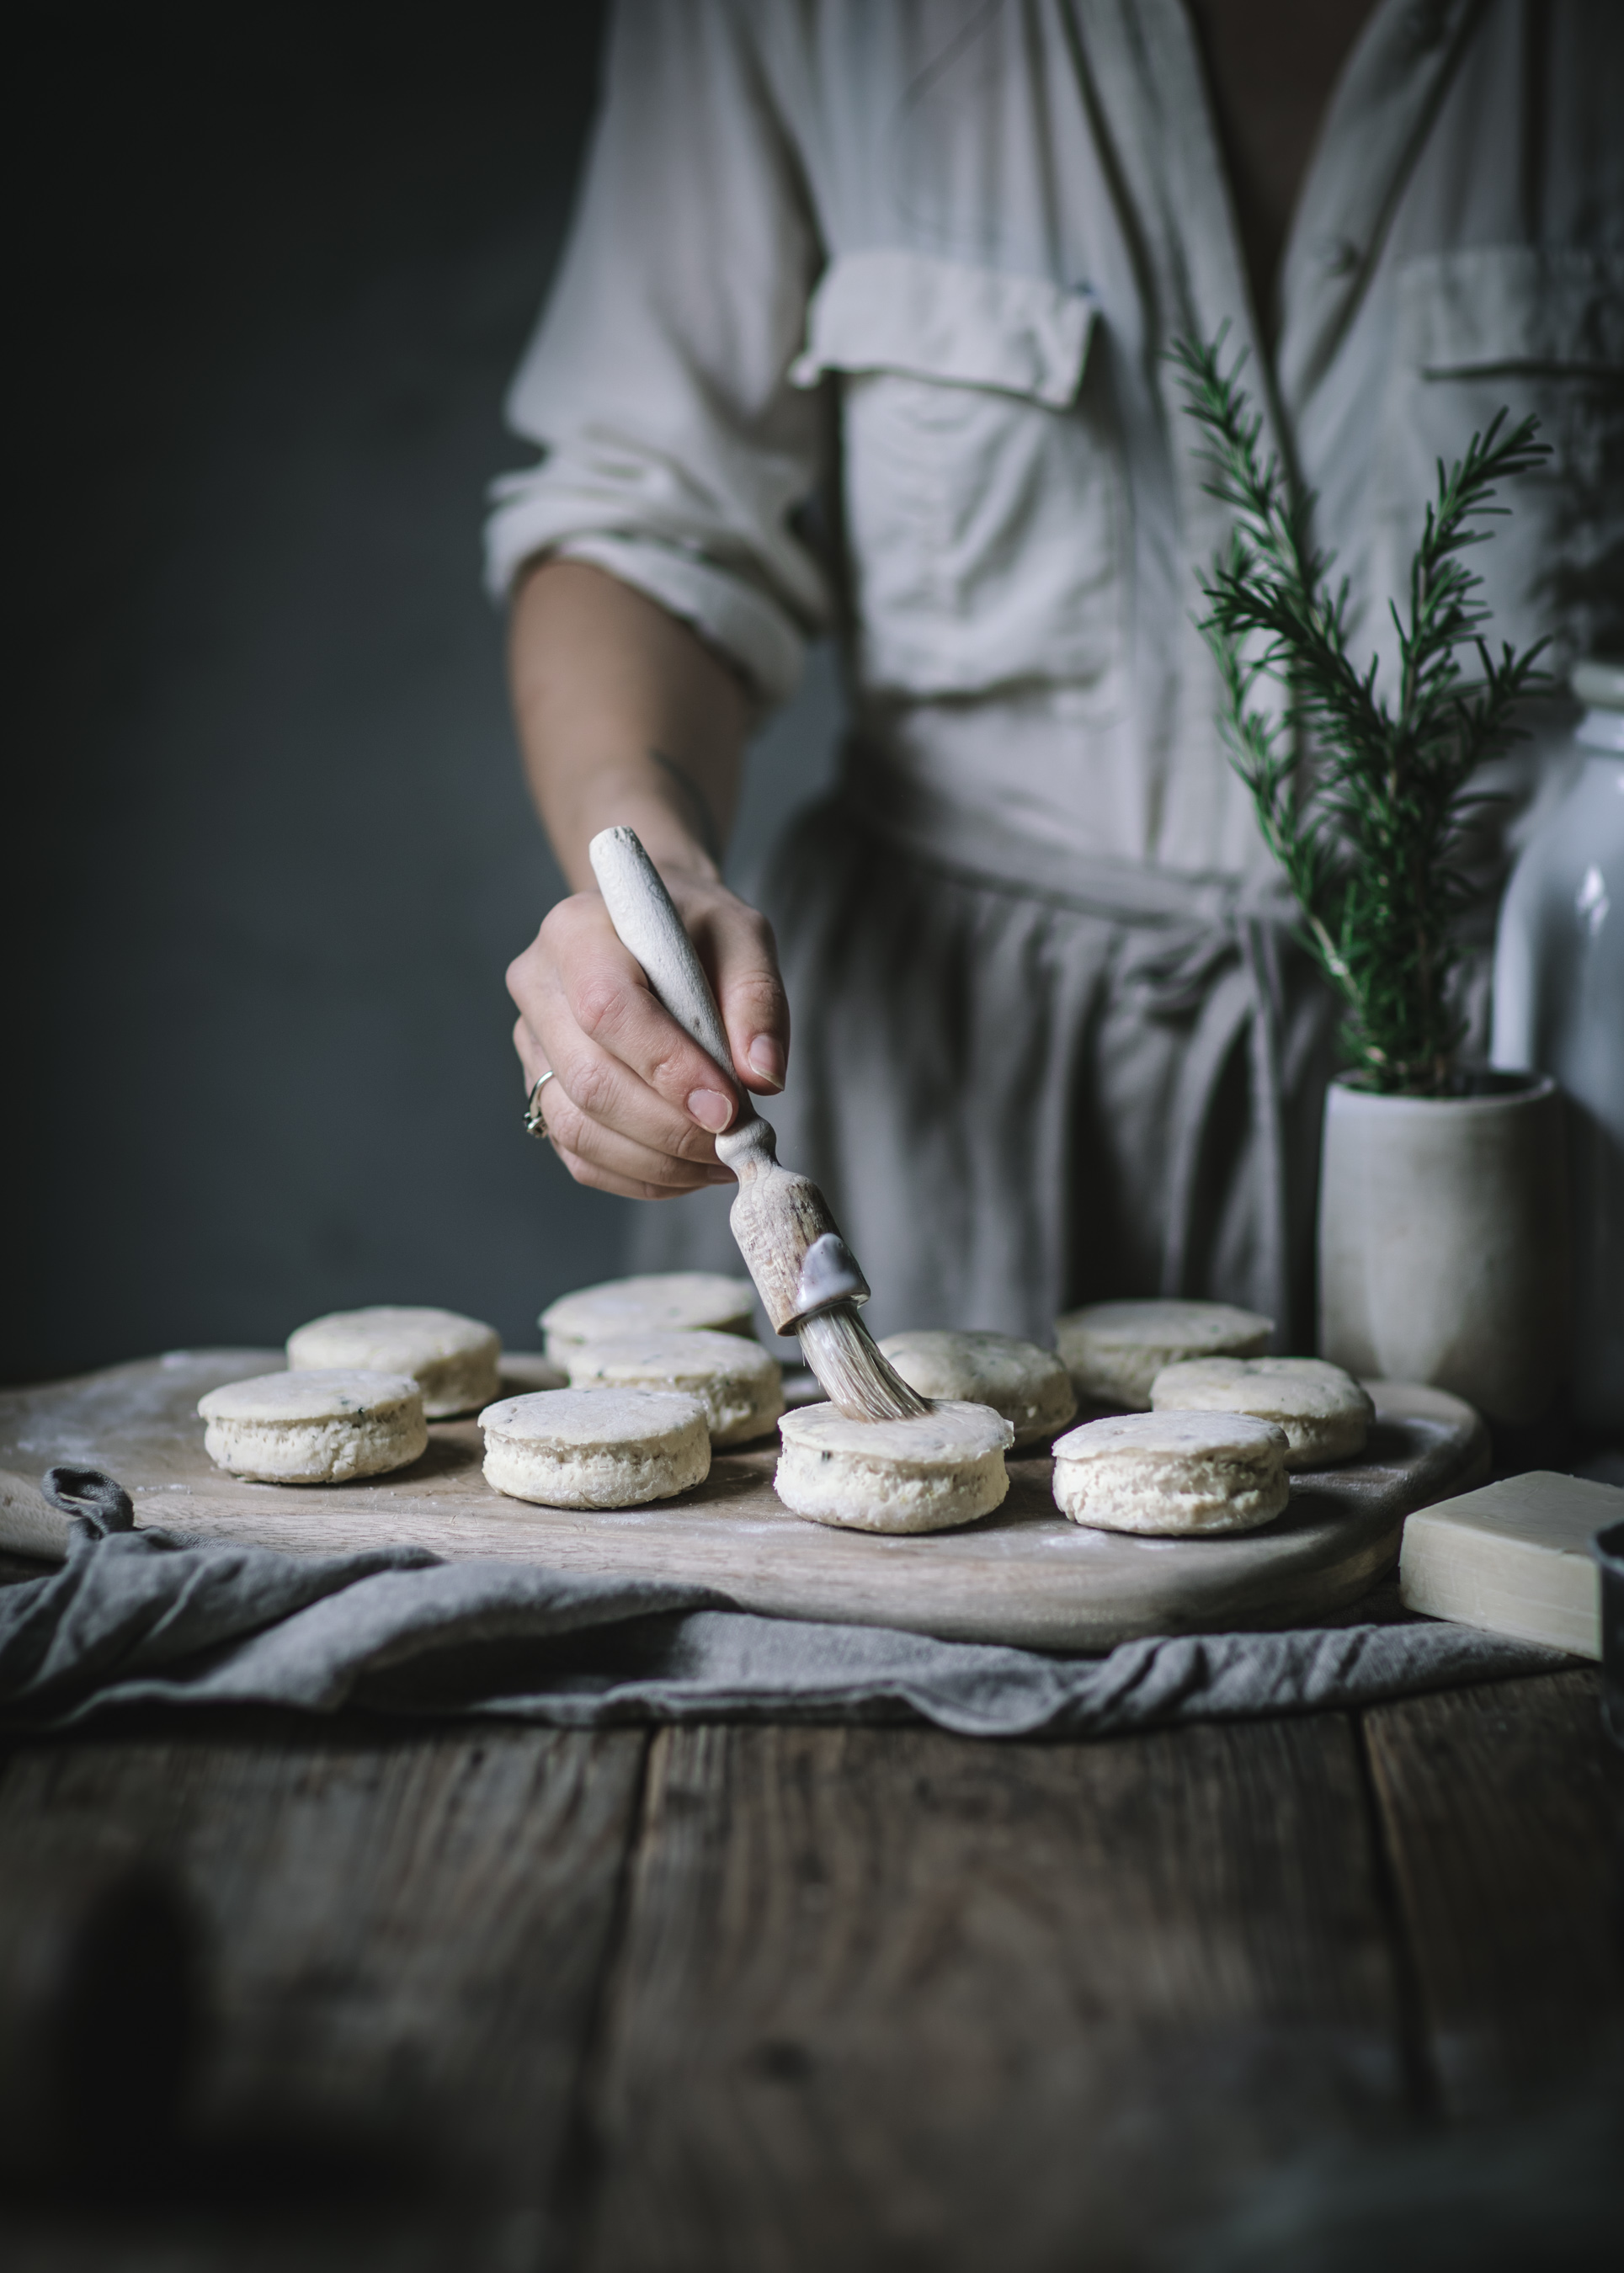 Biscuits being made